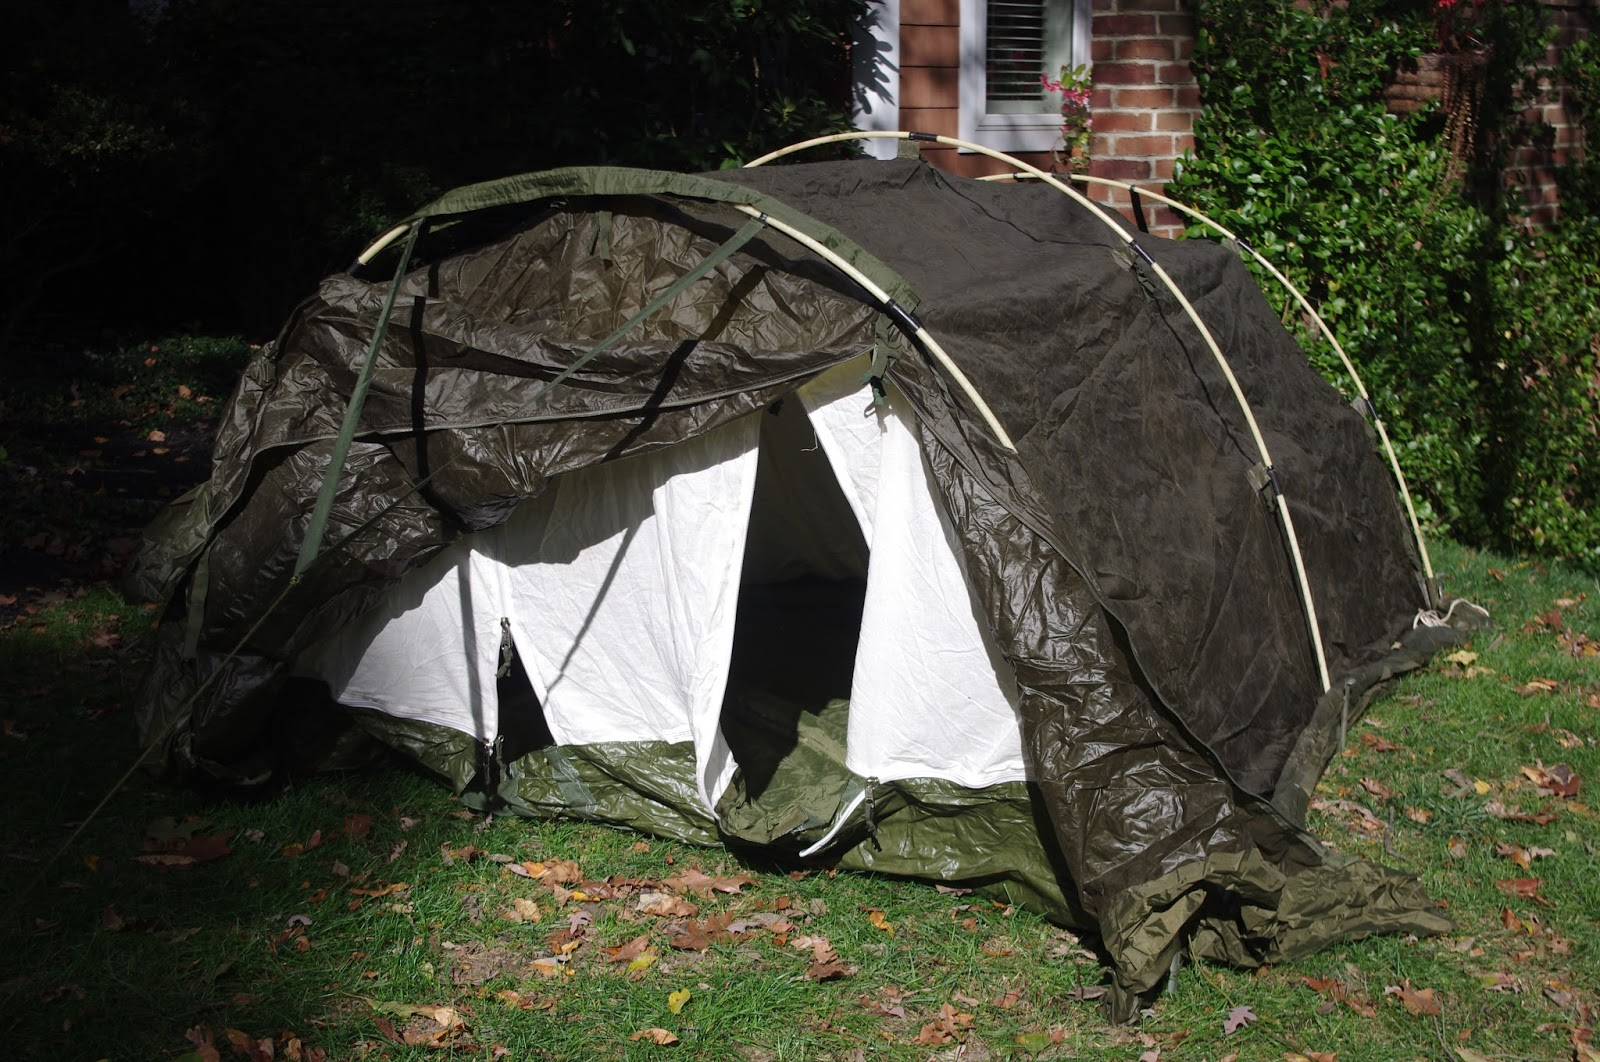 The entrance can be minimized to two entrances at each end or opened wide to create an entrance as large as the entire end of the tent. & Surviving the Worst of Mother Nature in British Style: Looking for ...